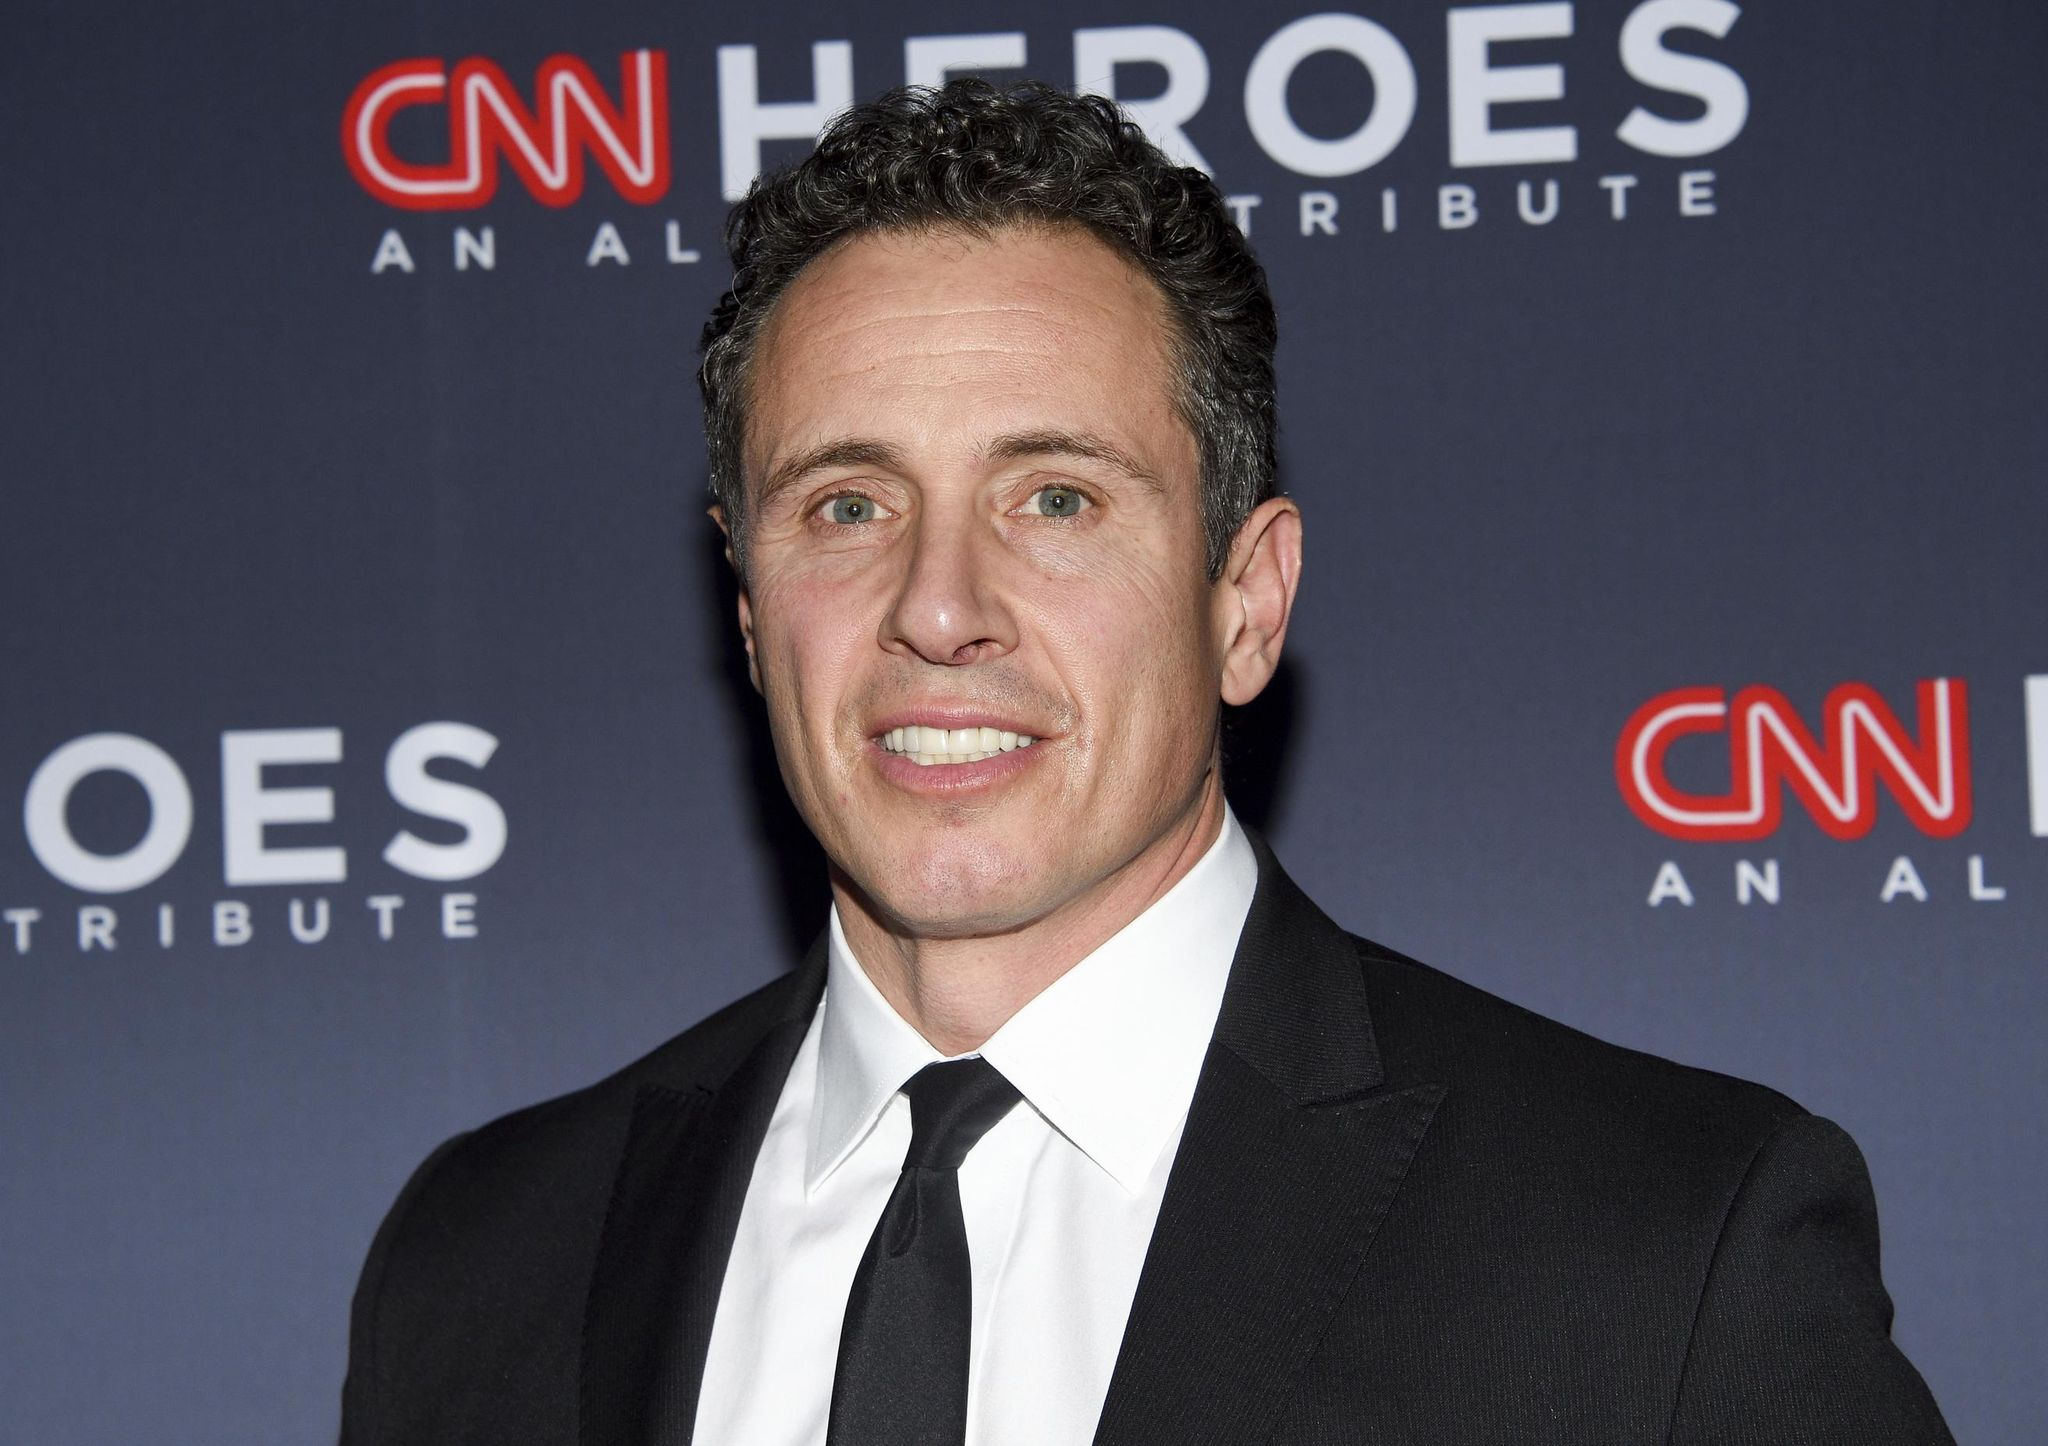 Chris Cuomo 'Only in America' response to rape survivor pro-NRA gun message ripped